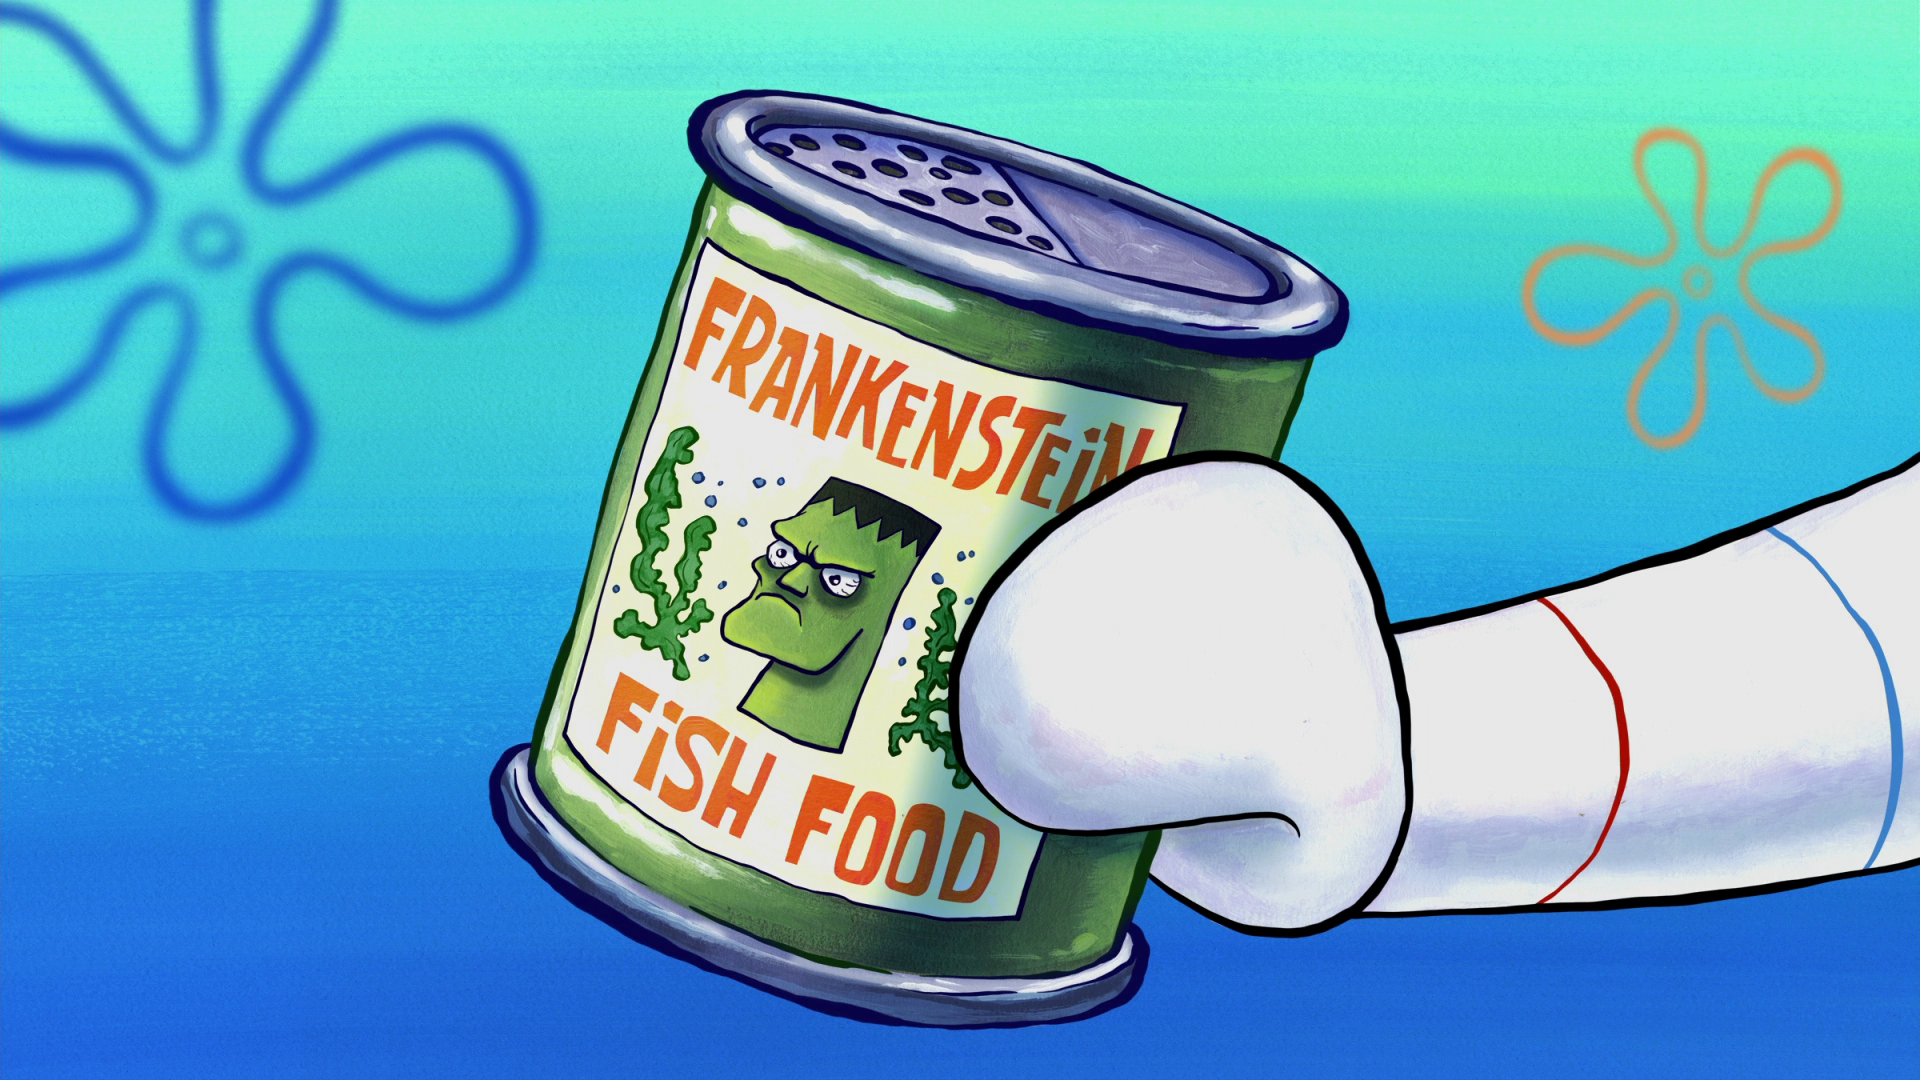 Frankenstein Fish Food